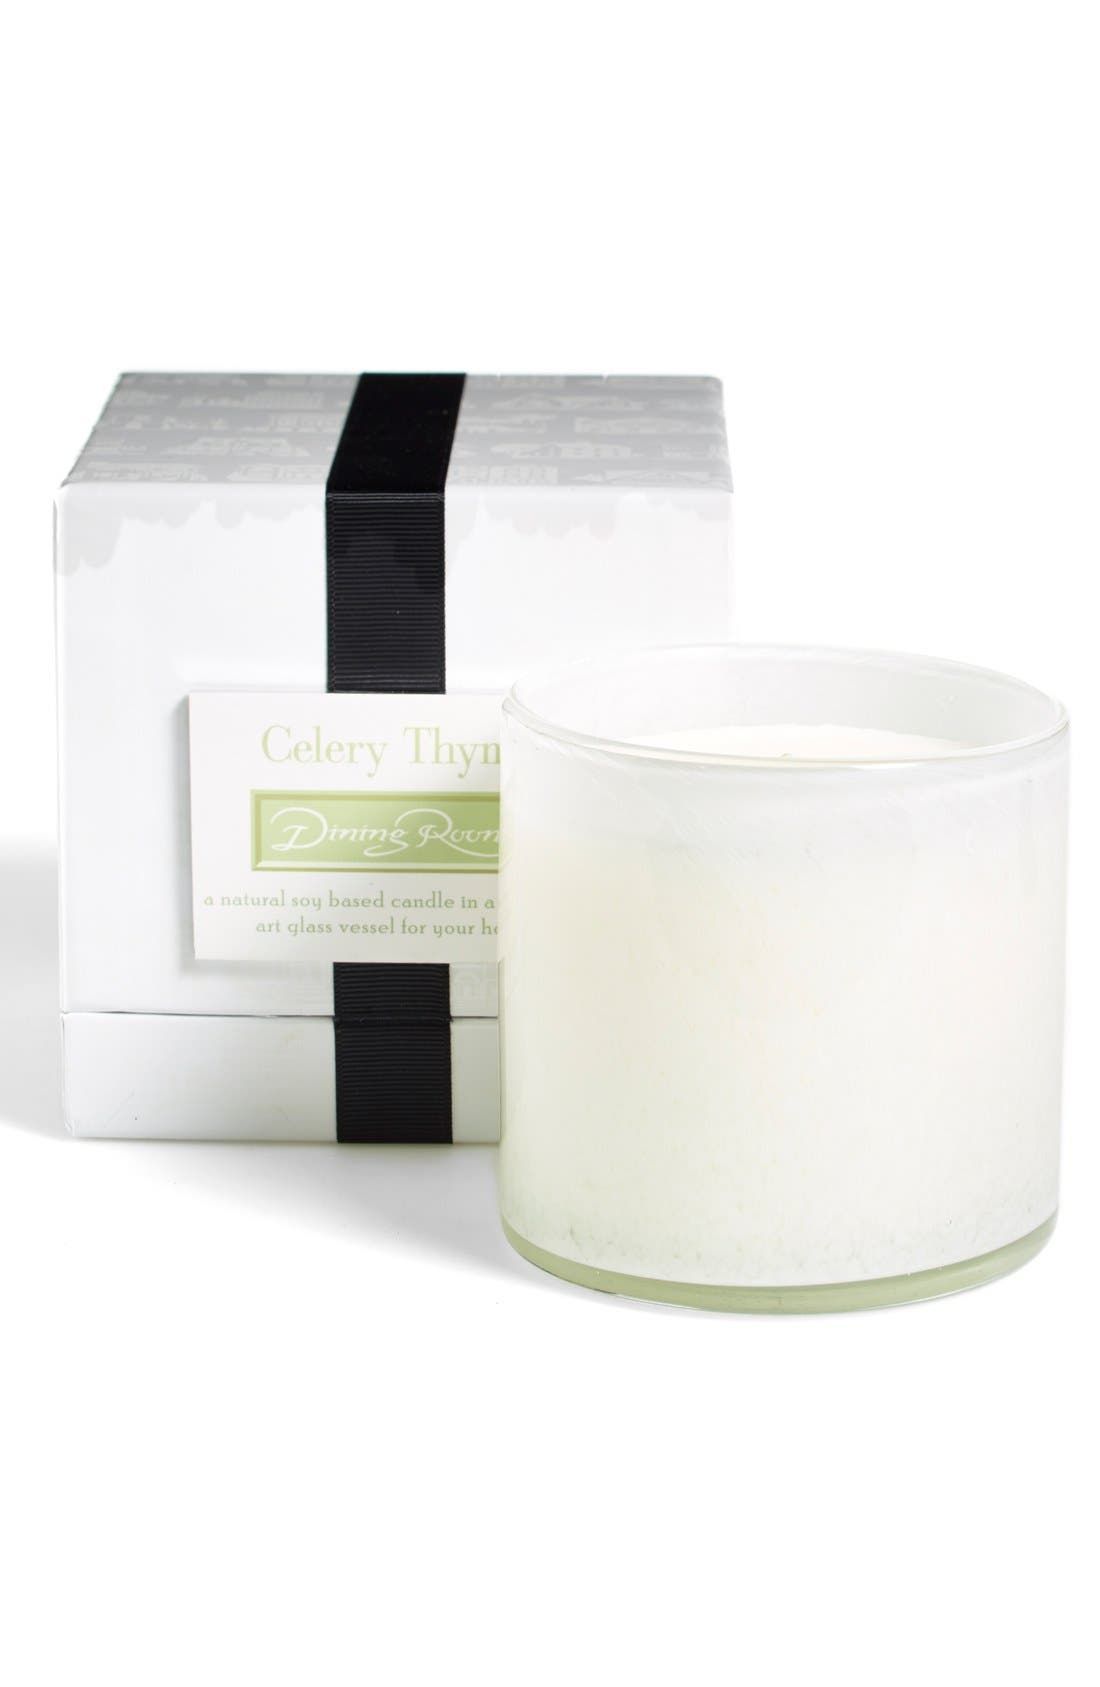 'Celery Thyme - Dining Room' Candle,                             Alternate thumbnail 3, color,                             NO COLOR